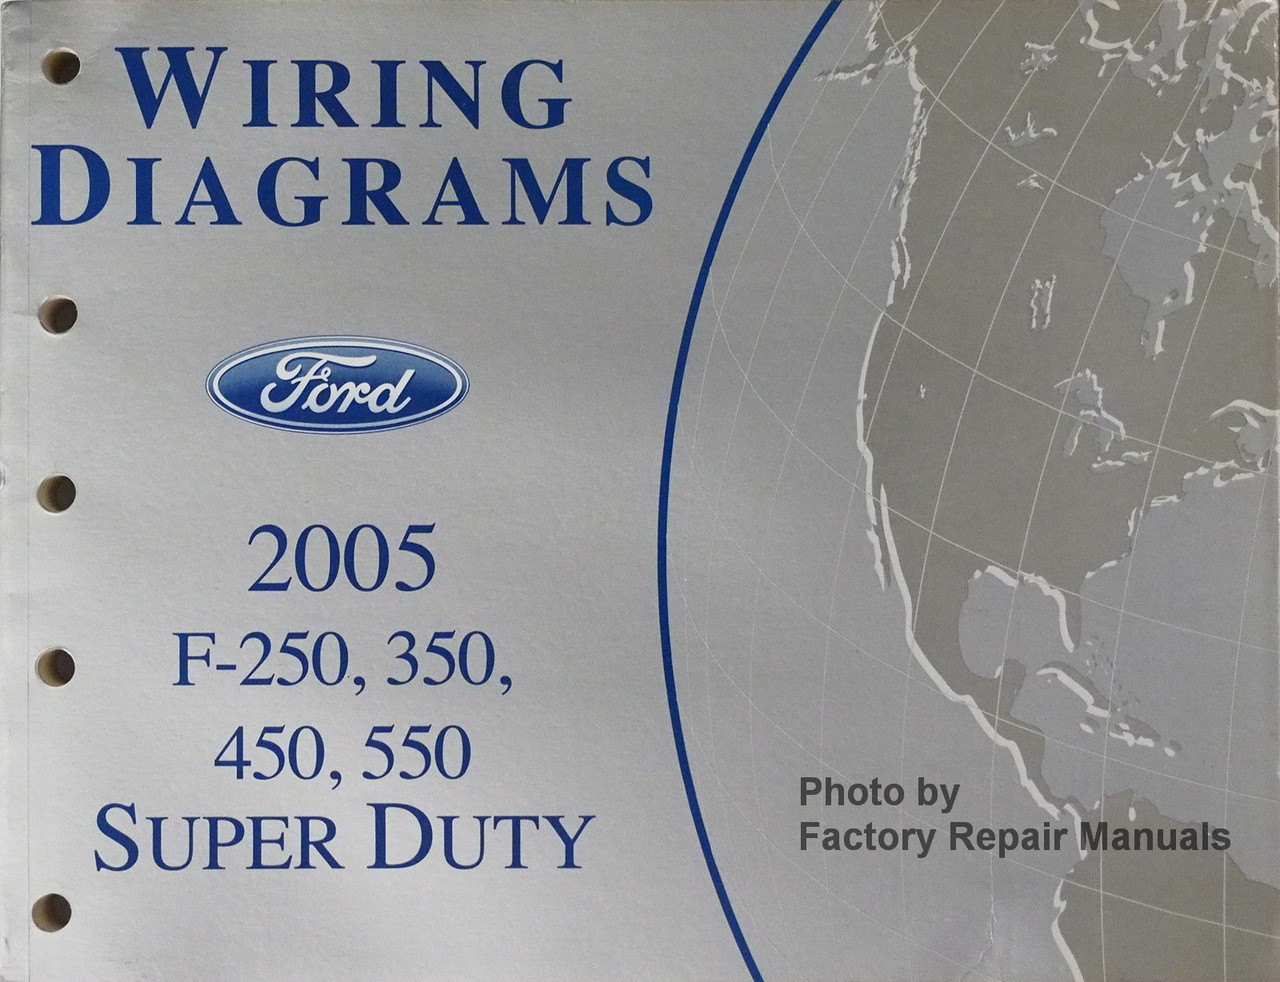 2005 Ford F250 F350 F450 F550 Super Duty Truck Electrical Wiring Diagrams  Manual New - Factory Repair Manuals | Ford F550 Engine Wiring Diagram |  | Factory Repair Manuals